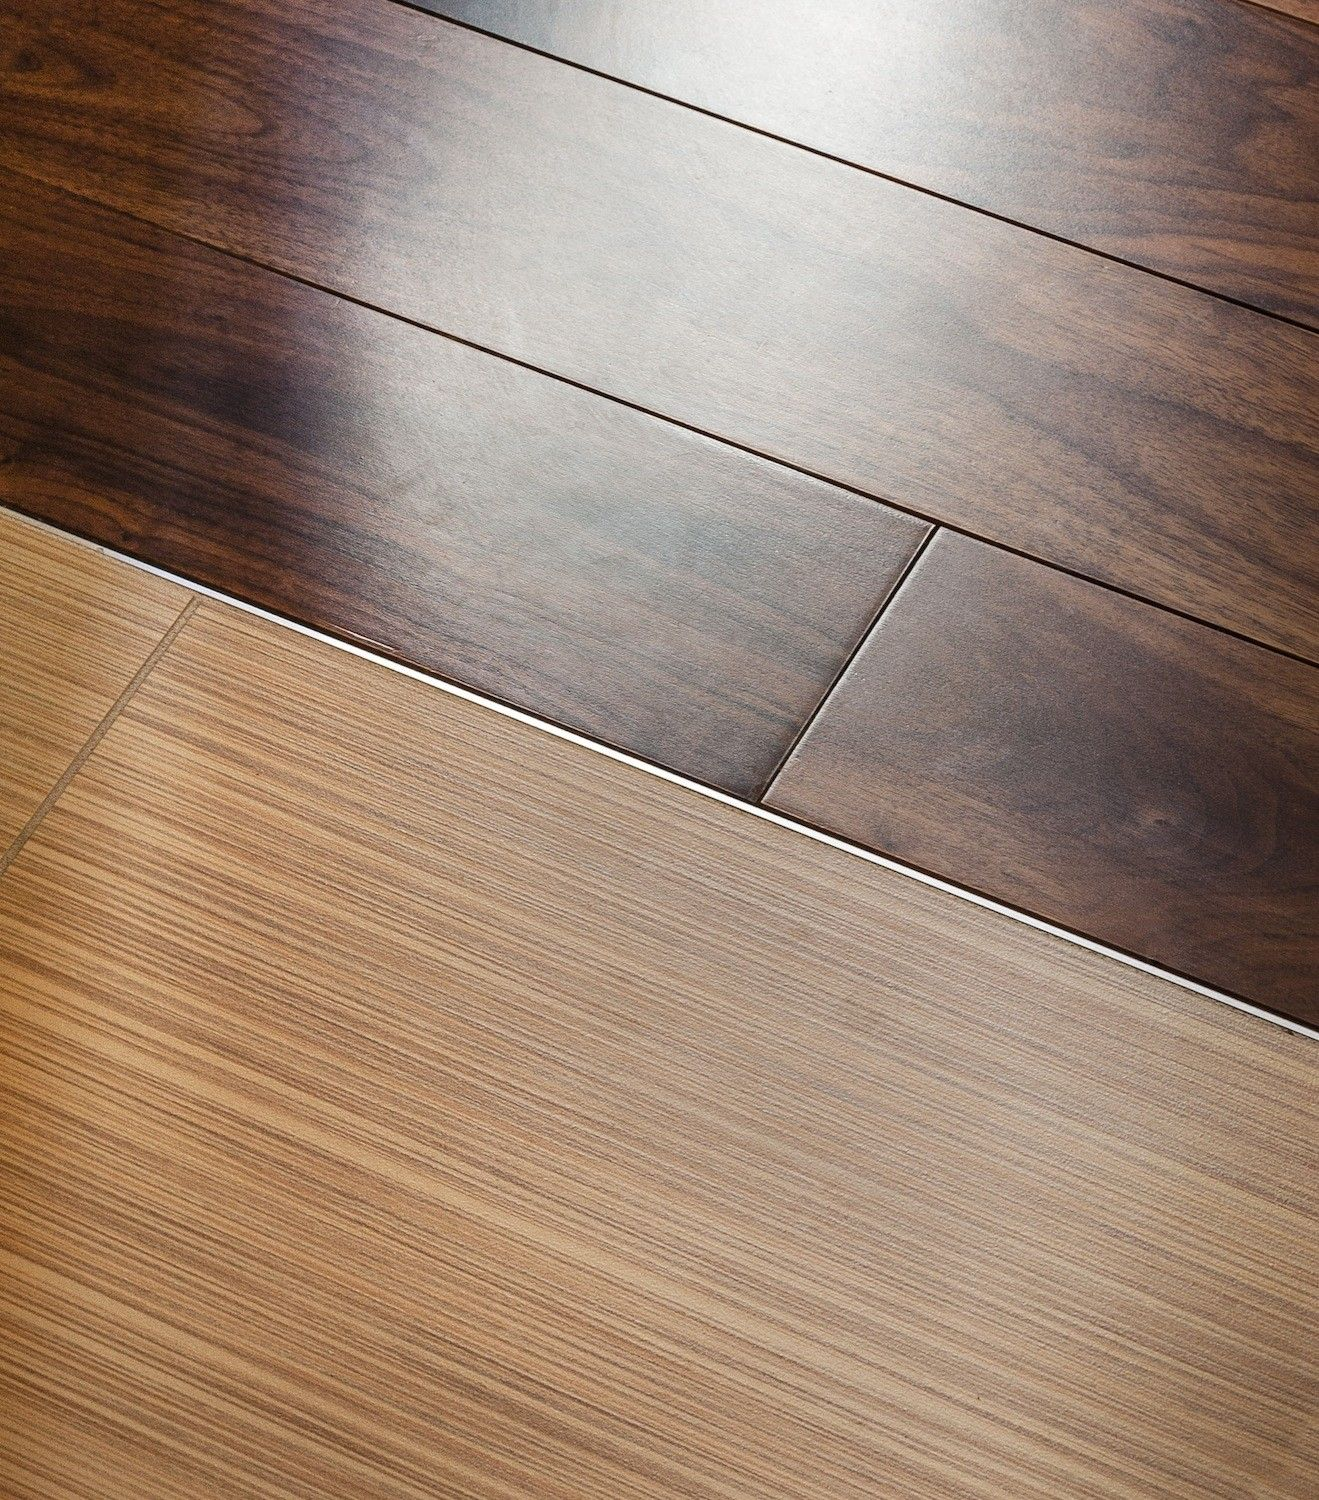 Interior clear lines wood floor to darker wood planks floor tile interior clear lines wood floor to darker wood planks floor tile with regard to wood floor dailygadgetfo Image collections